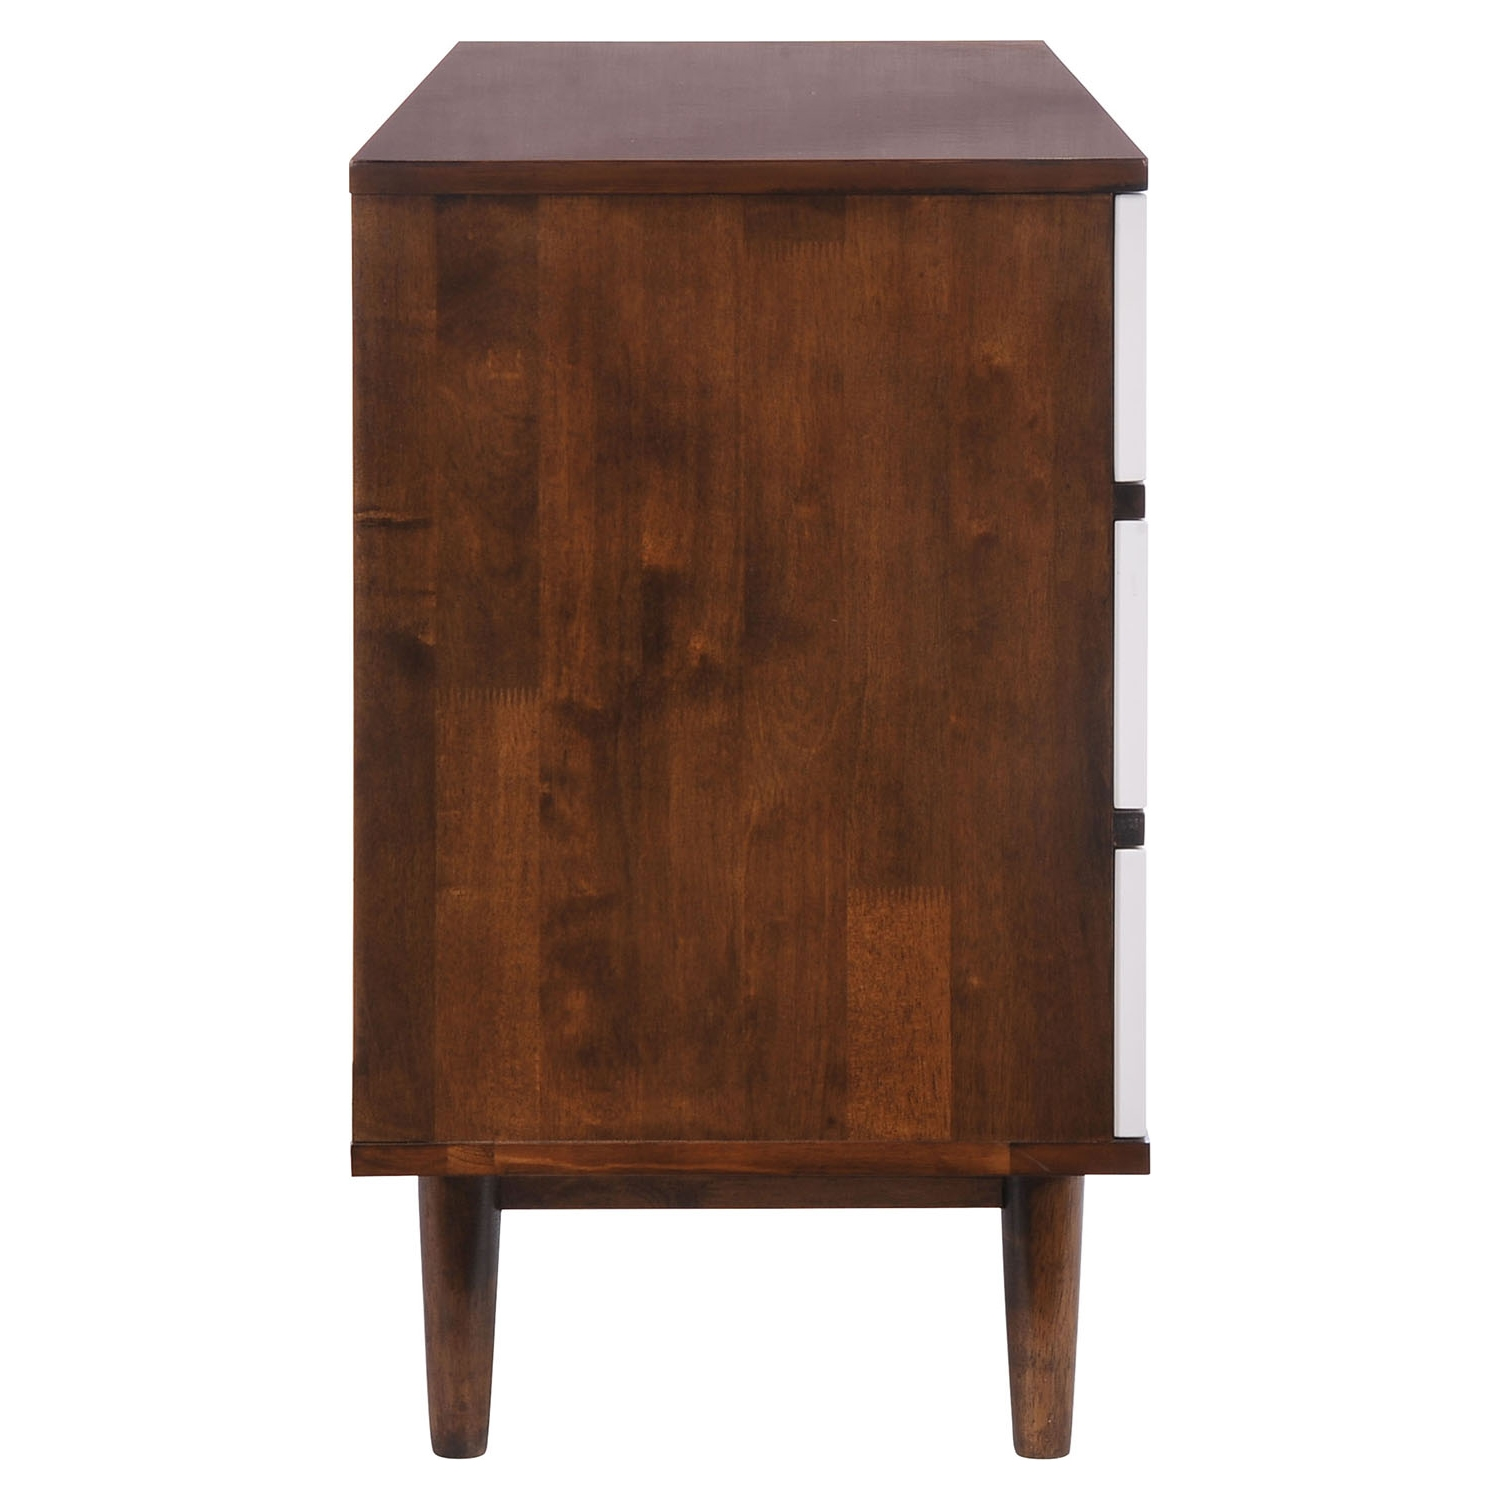 LA Double Dresser - Walnut and White - ZM-800332